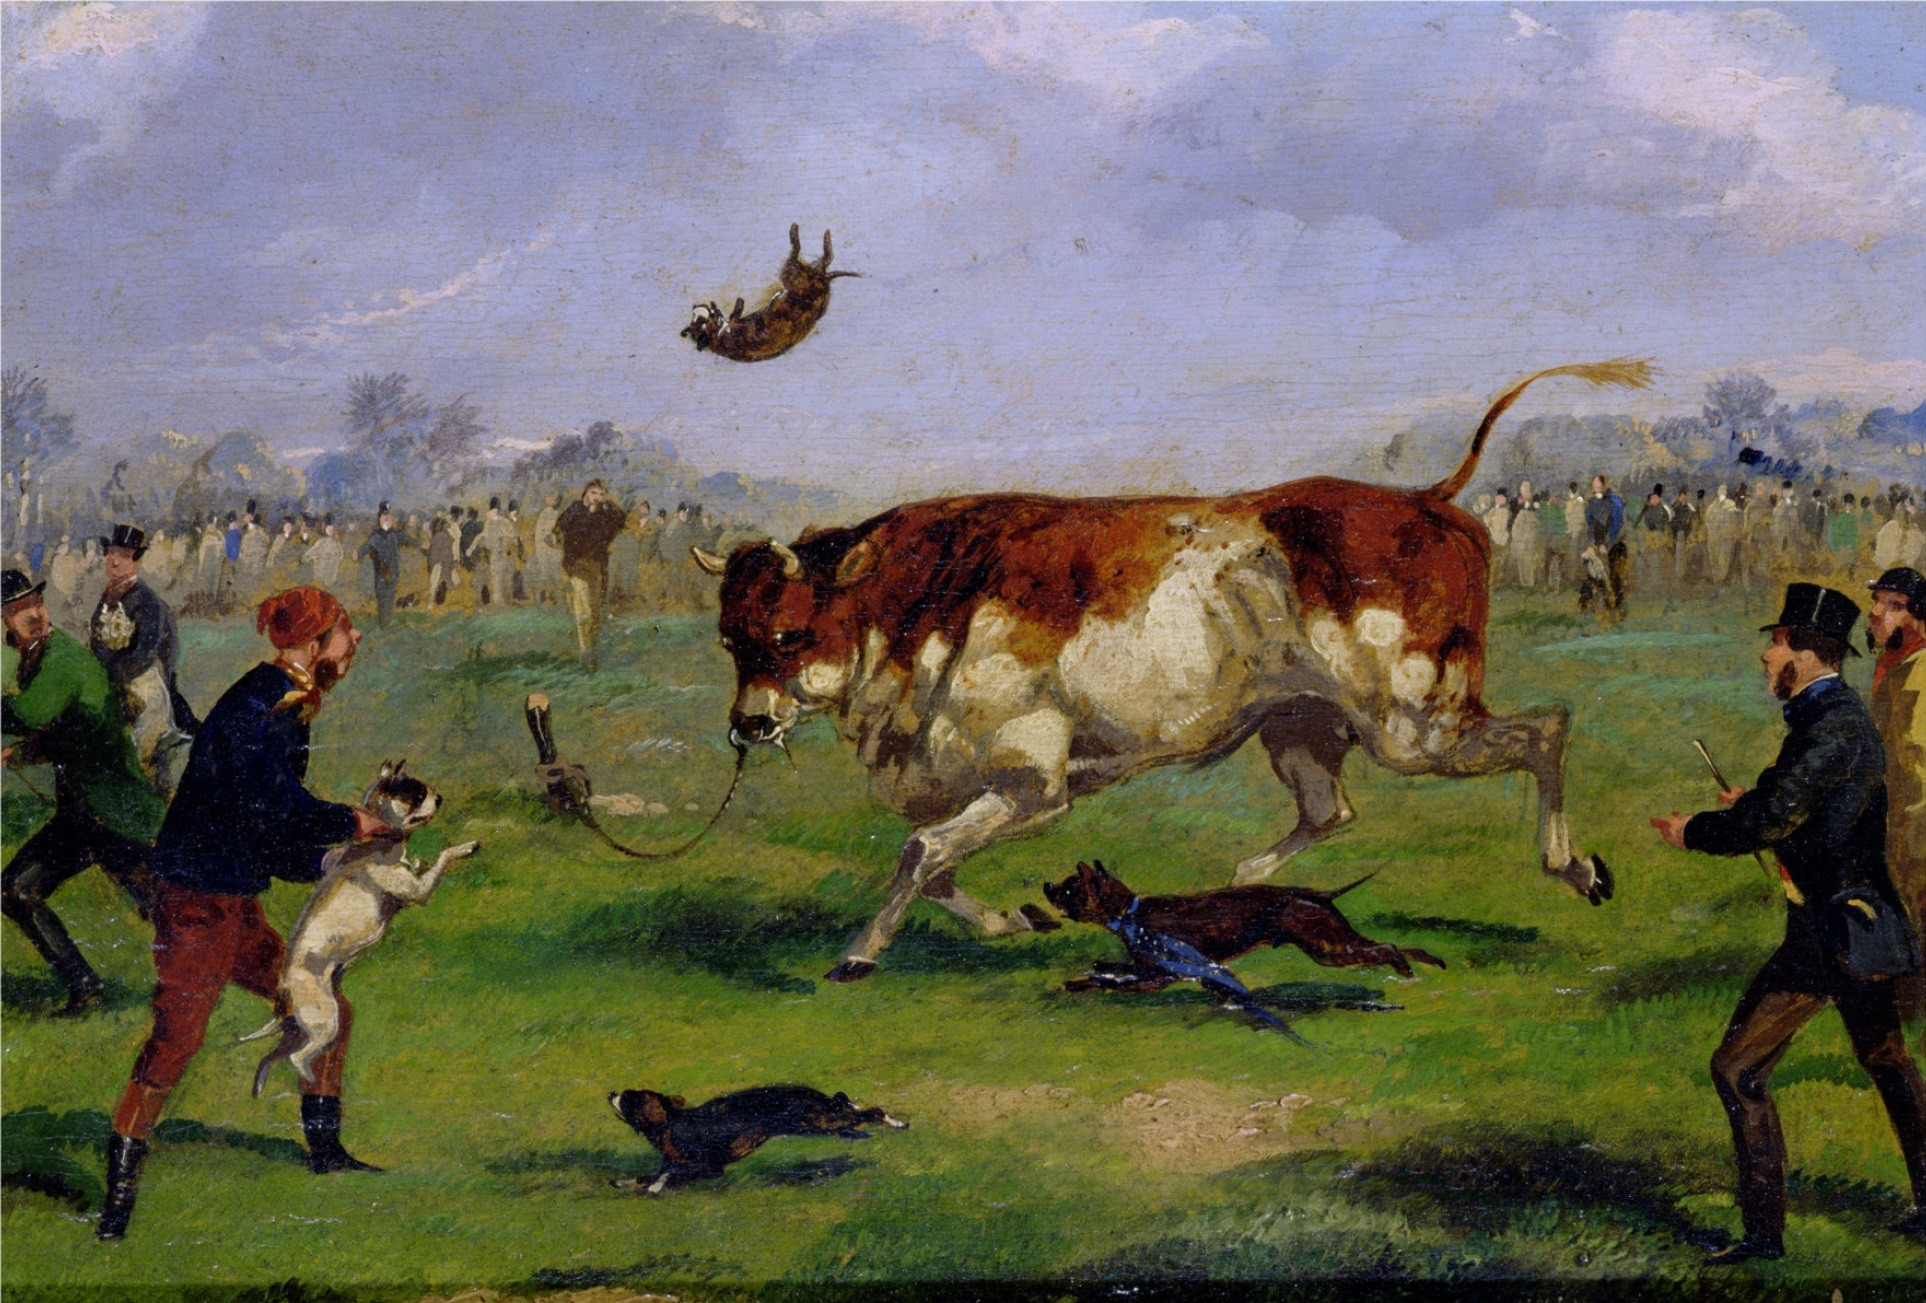 quadro descreve o bull baiting (Foto: wikimedia commons)